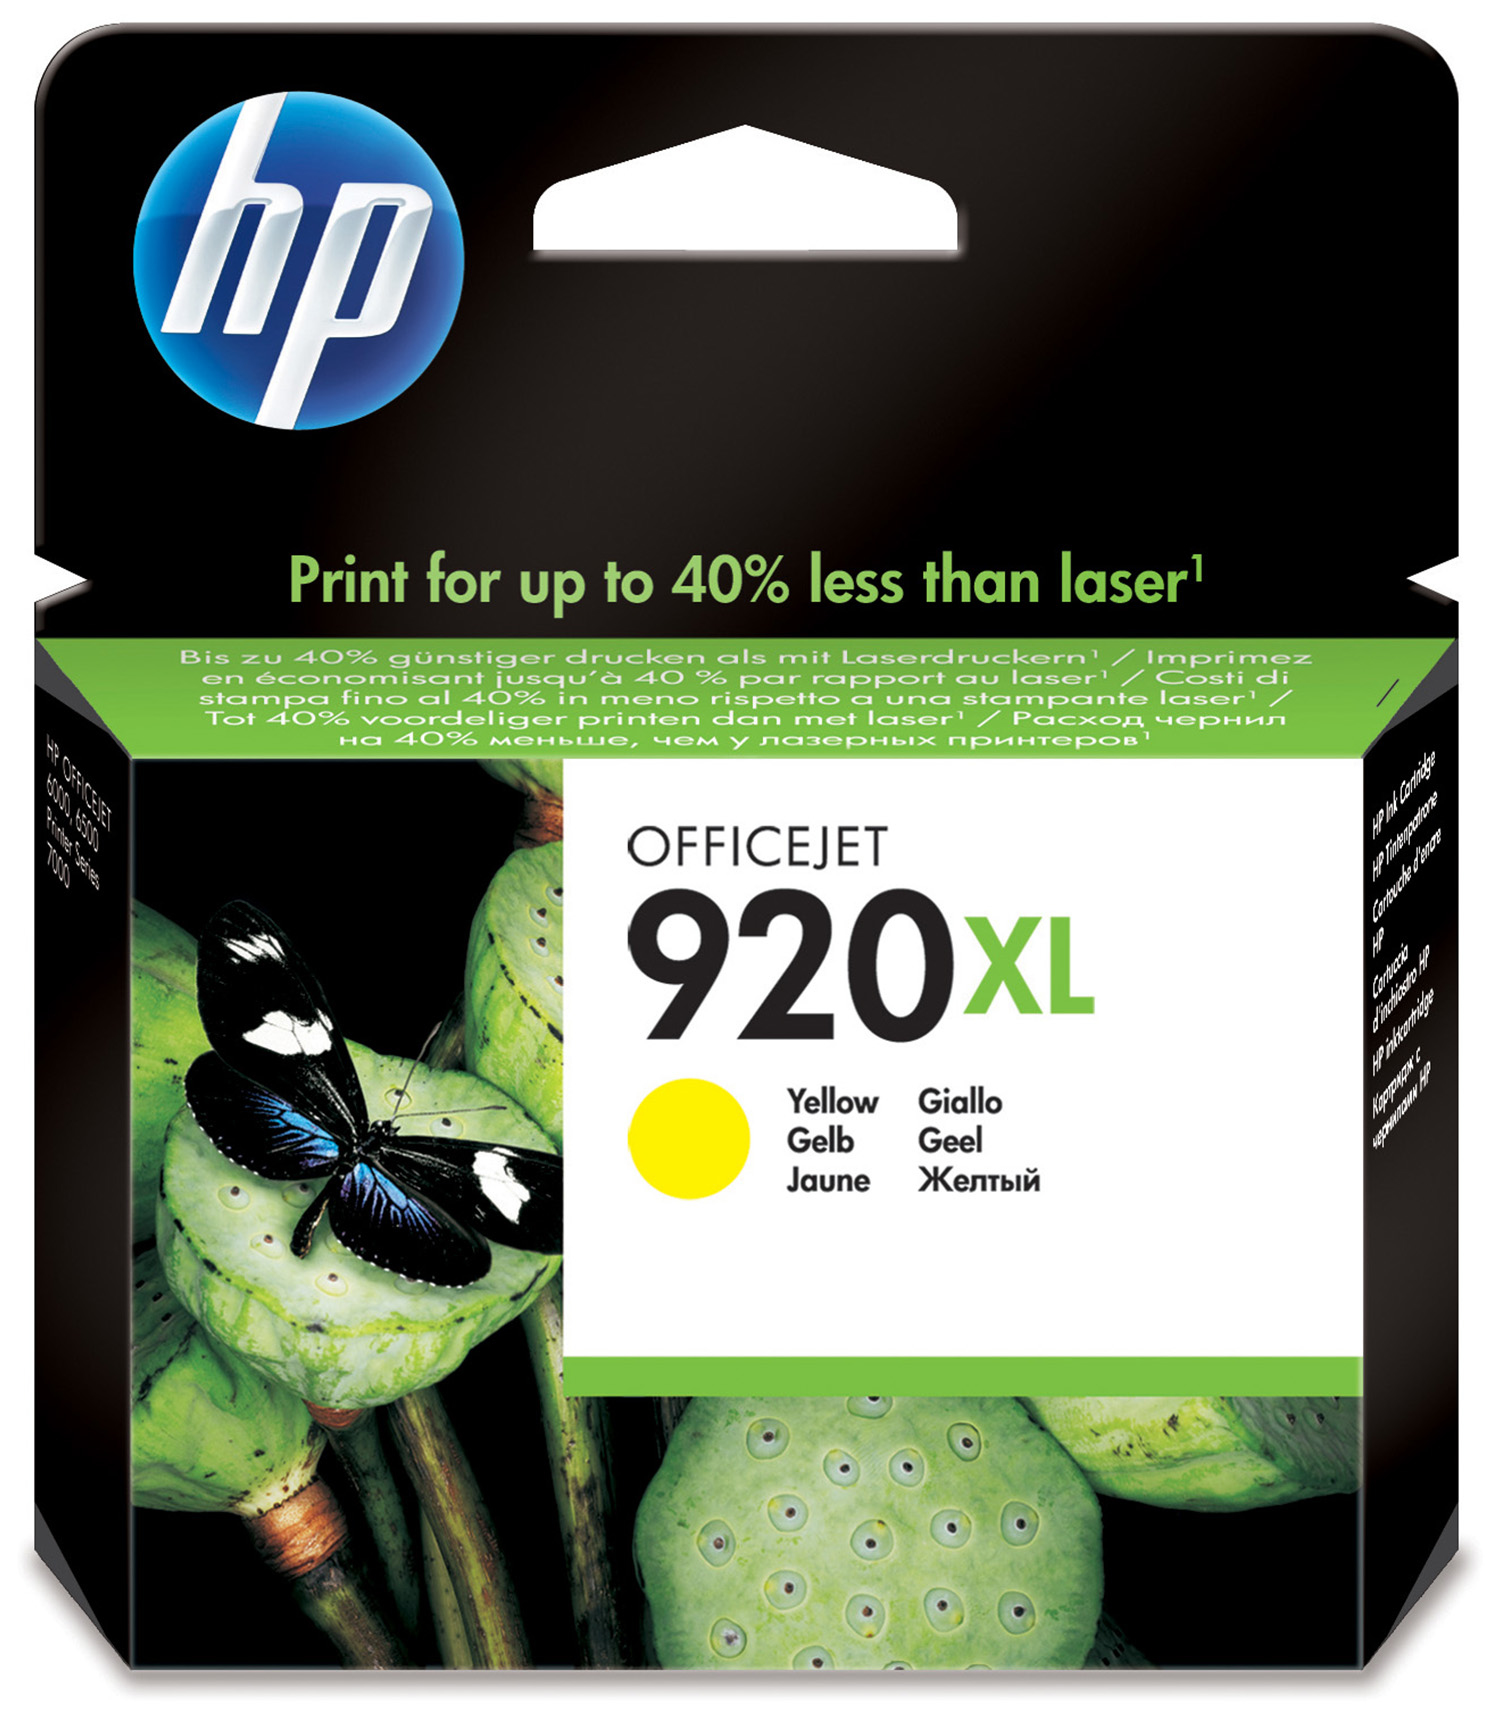 Cd974ae HP Hp 920xl Yellow Ink Cartridge - AD01